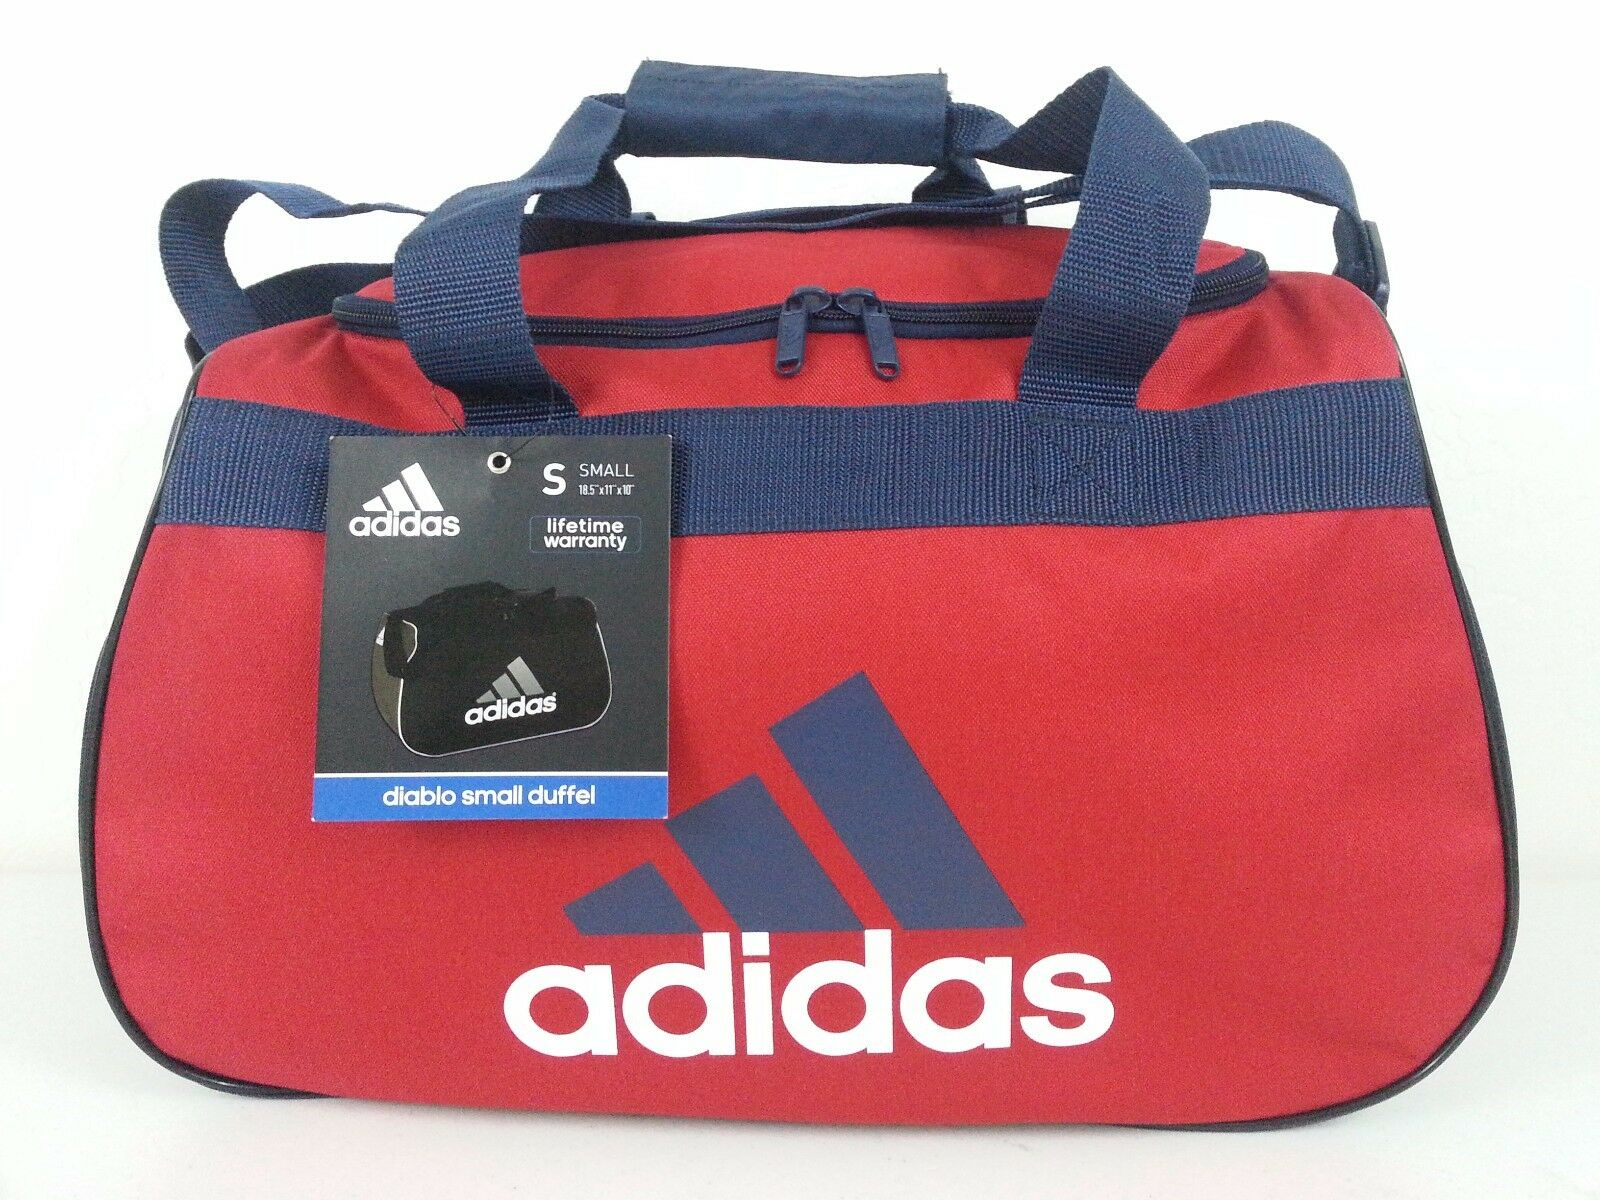 cfb4ee7cbddd adidas Diablo Small Duffel Bag Red navy Blue white Sport Gym Travel ...